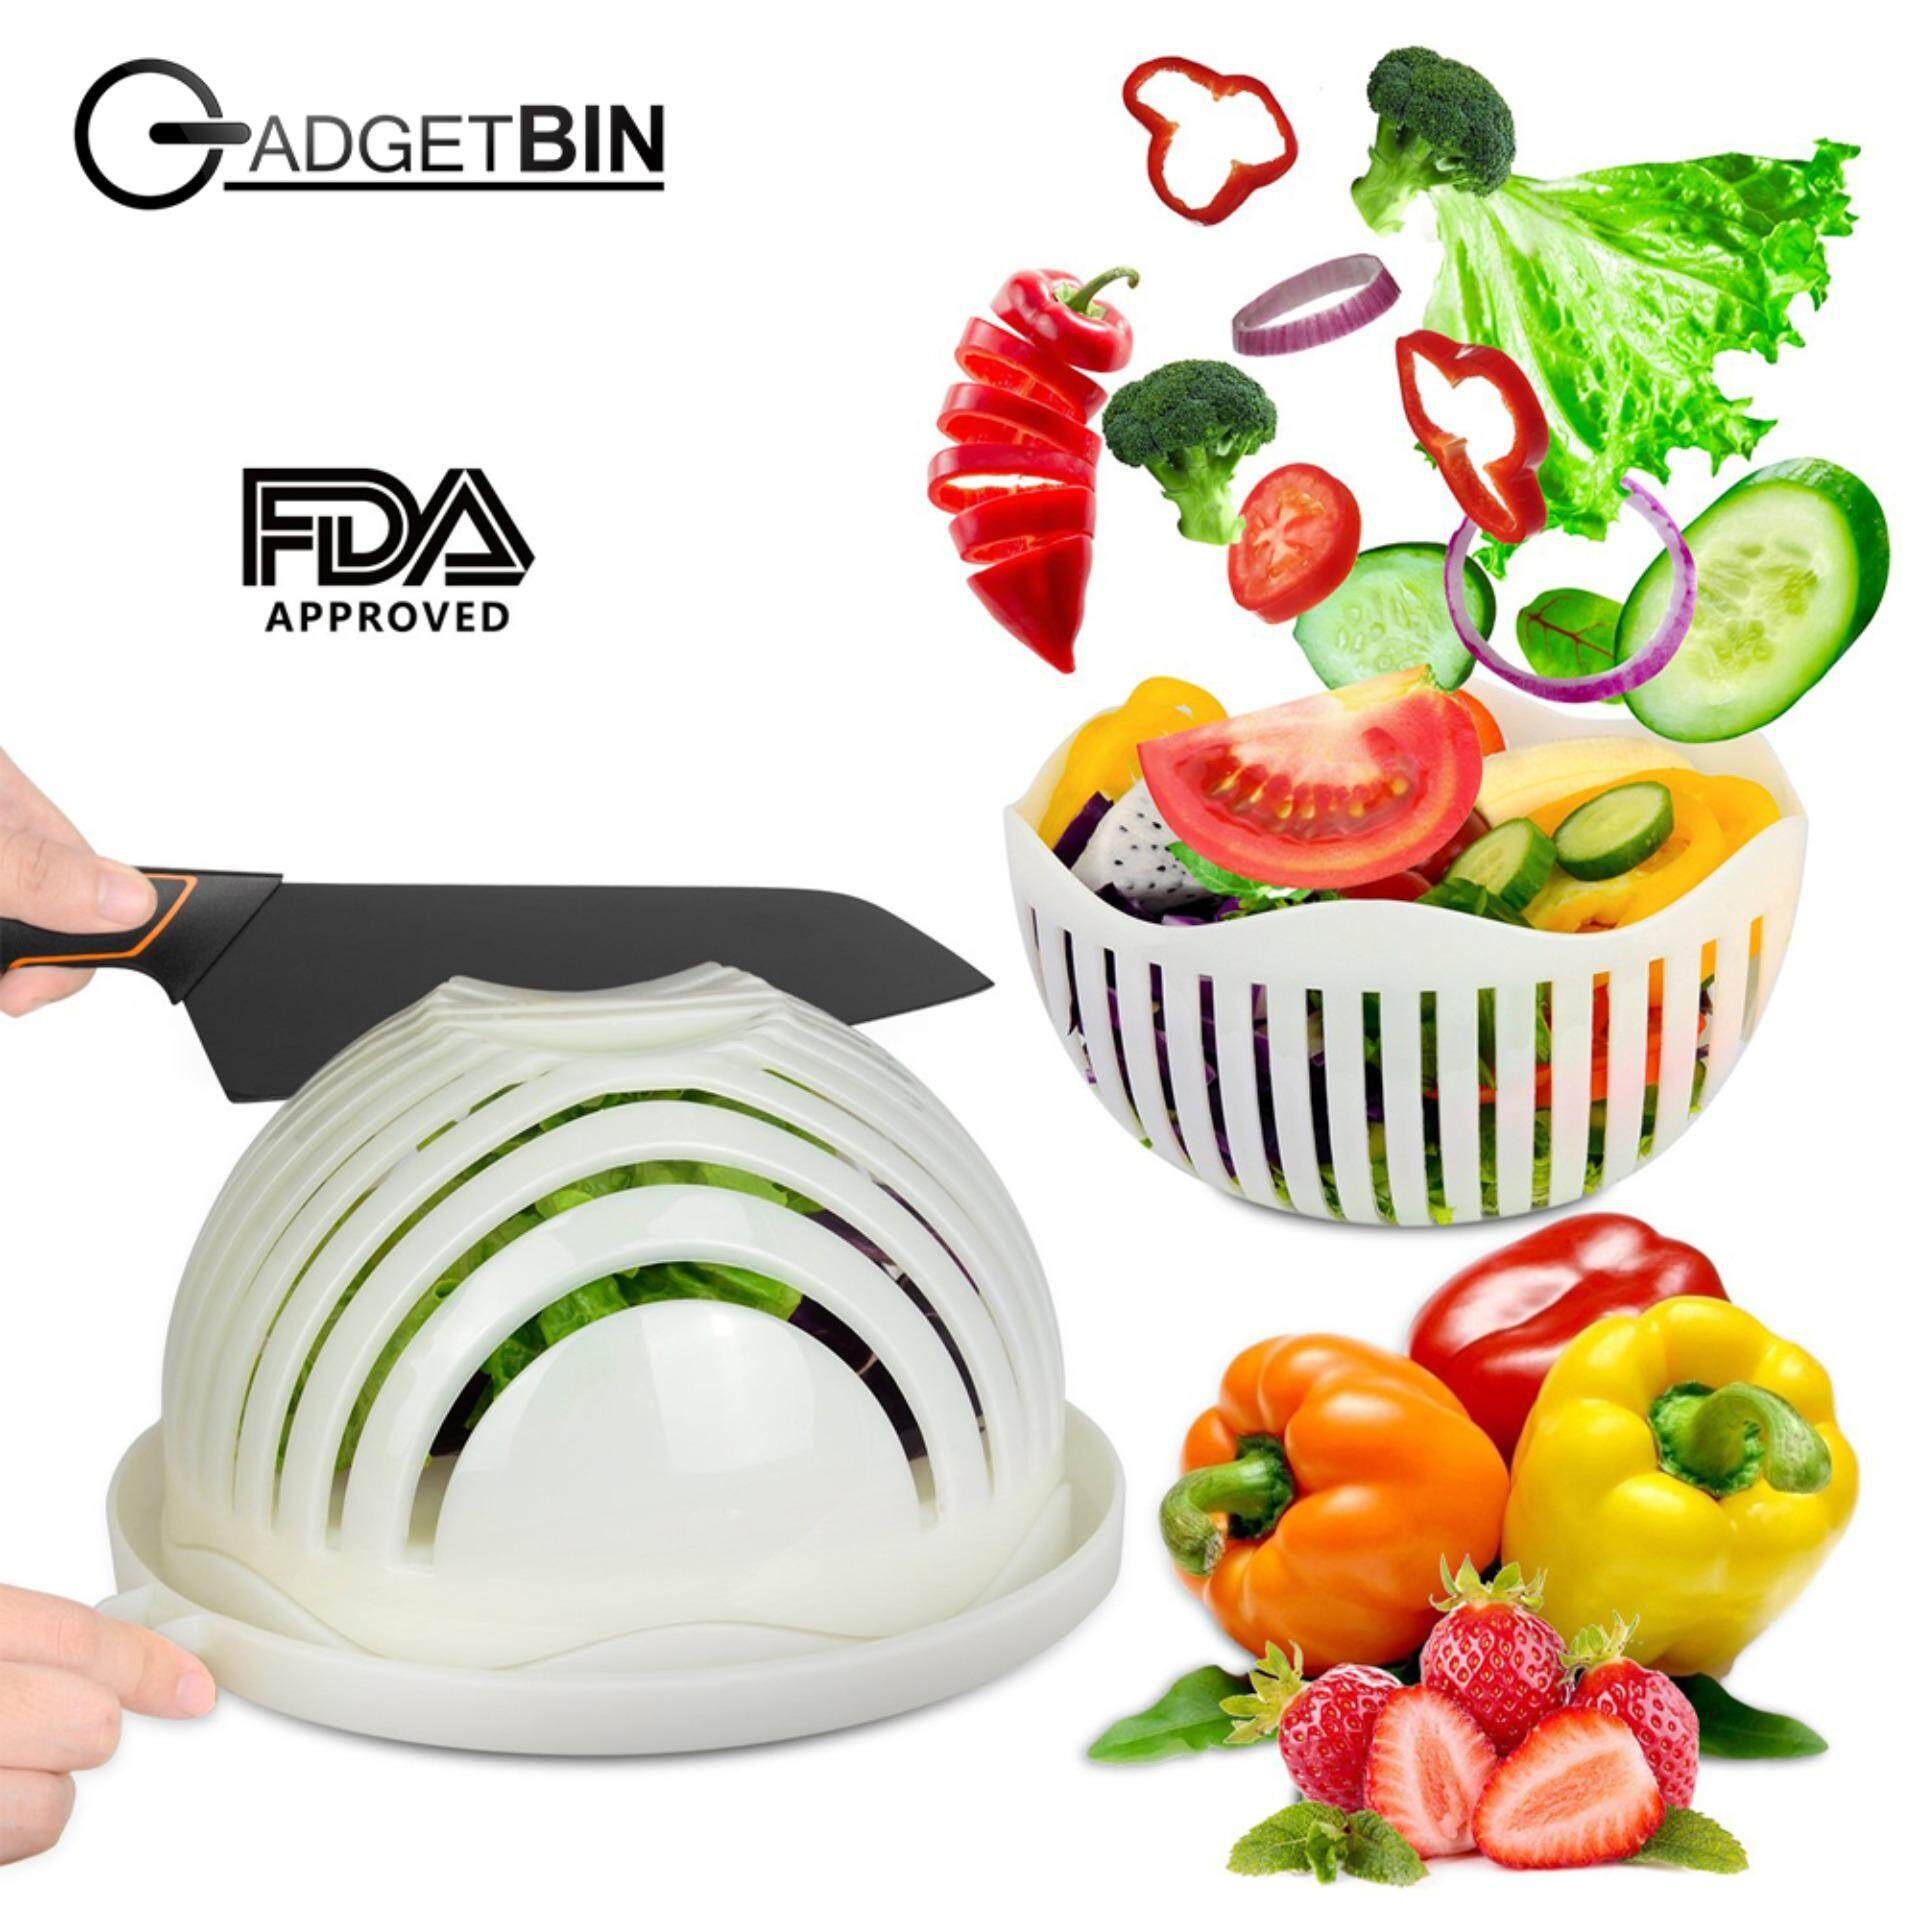 Salad Cutter Bowl Vegetable Cutter Bowl Make Your Salad In 60 Seconds ! By Gadgetbin.